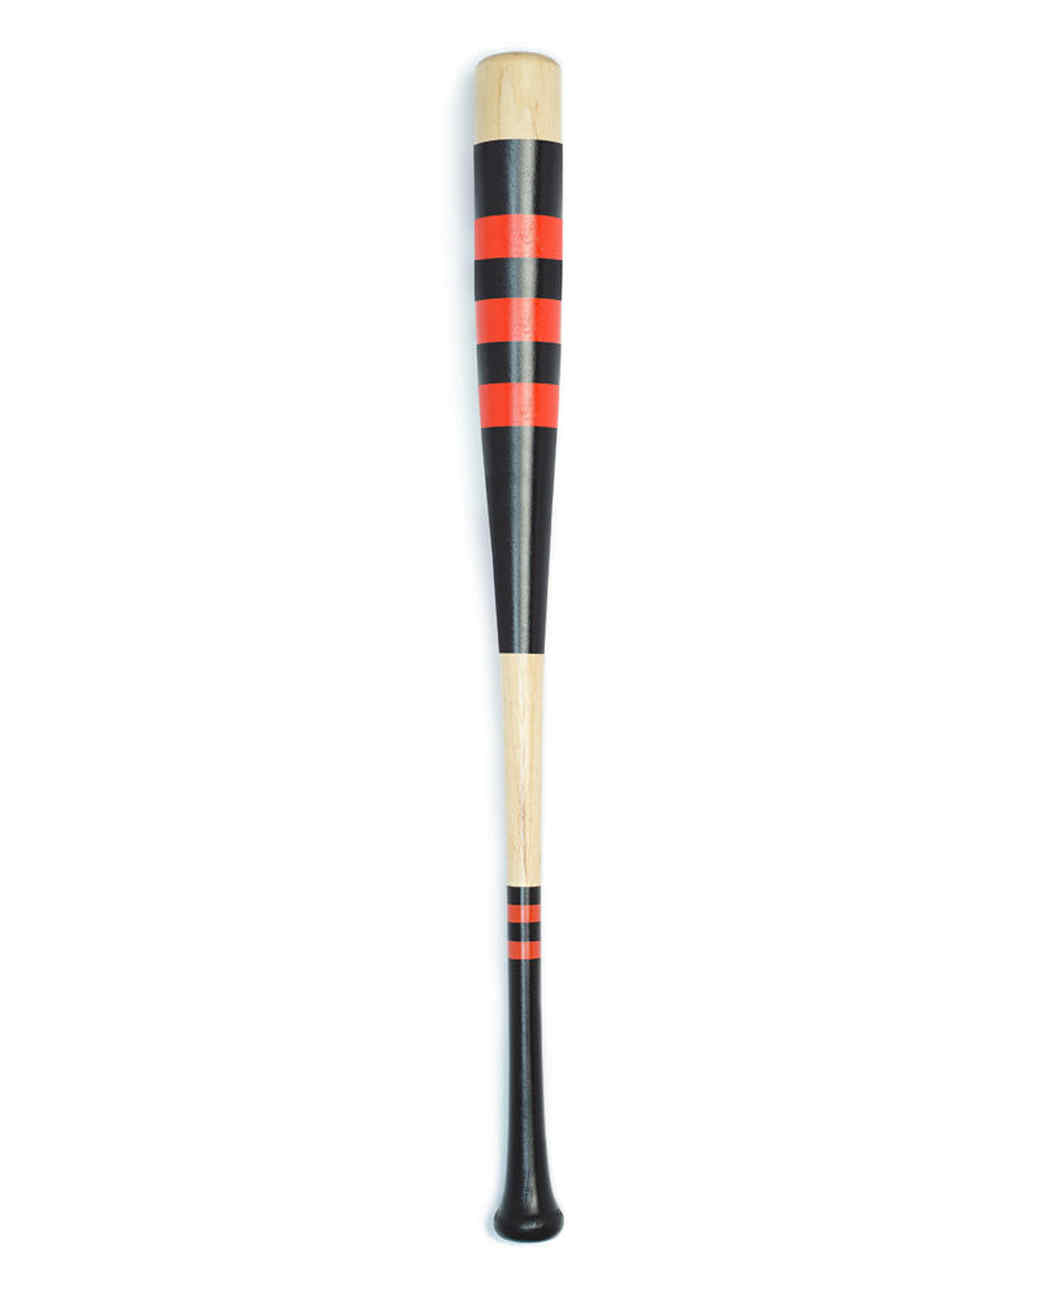 mitchell-bat-co-red-black-bat-1114.jpg